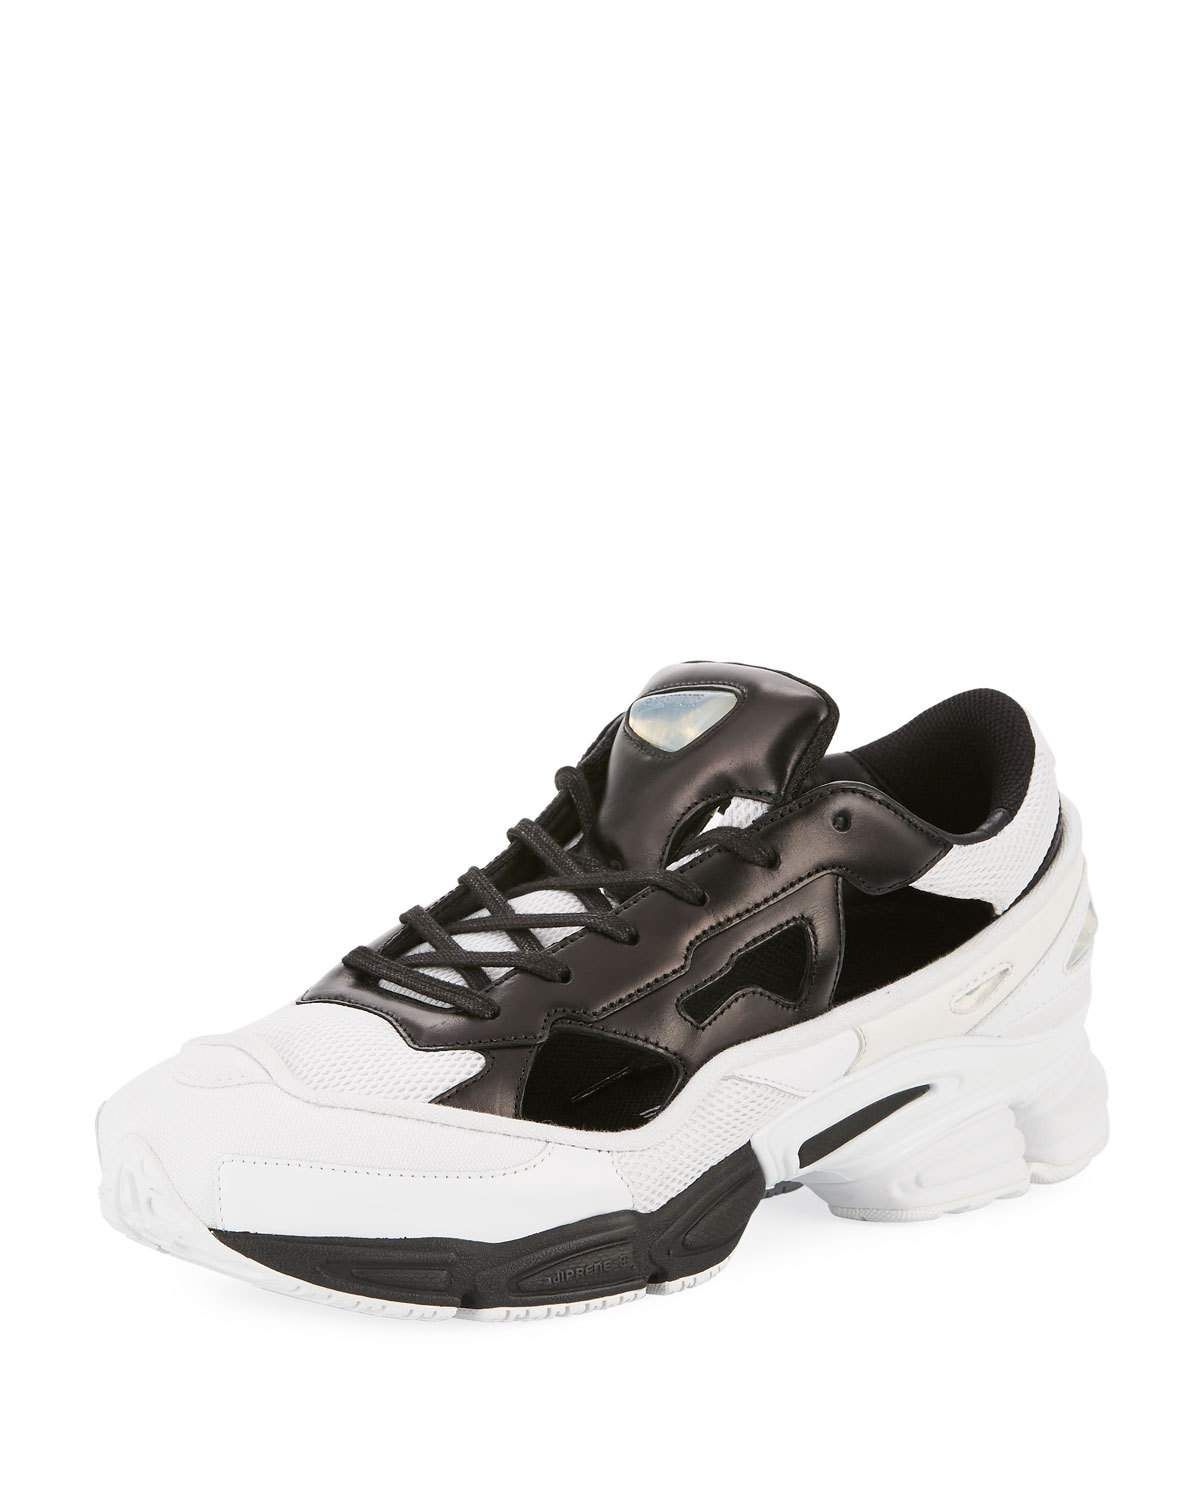 sale retailer 9c5a7 f58a6 Adidas By Raf Simons Replicant Ozweego Trainer Sneaker